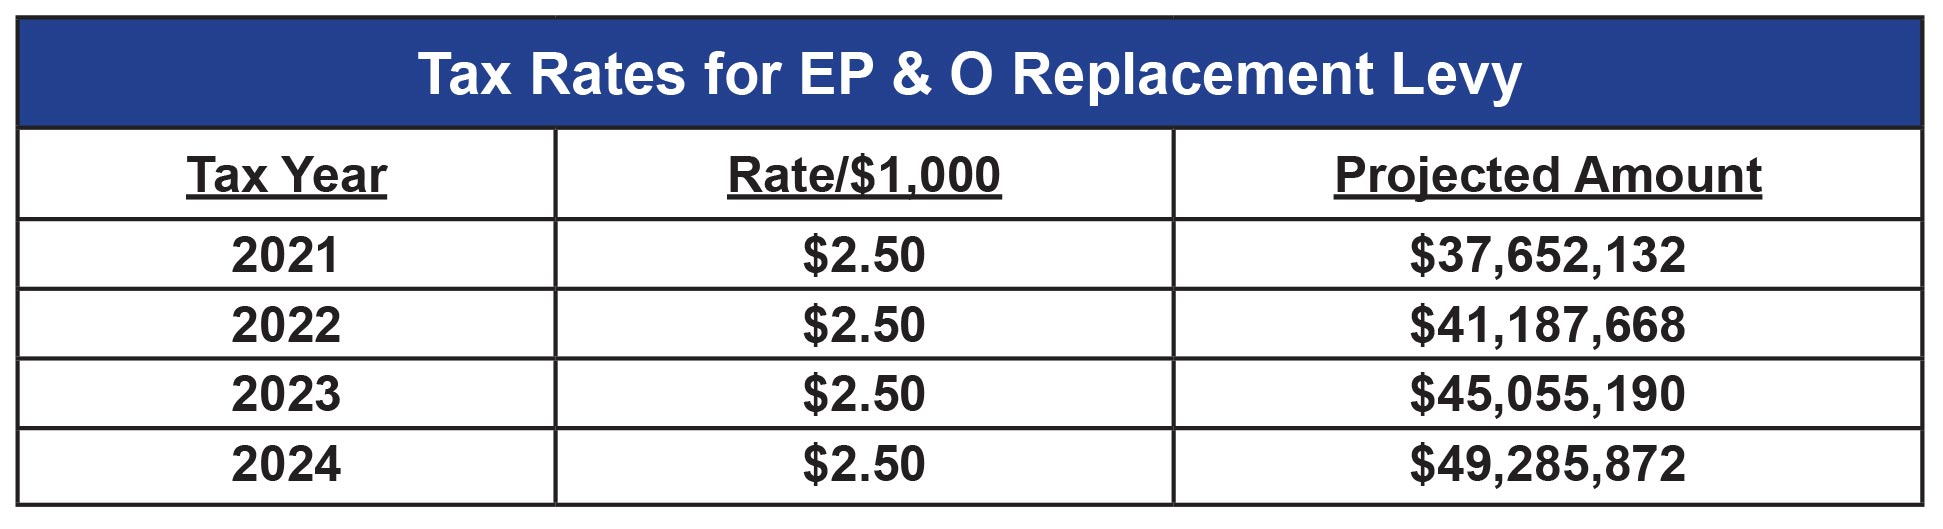 Tax Rate Table for EP&O Replacement Levy